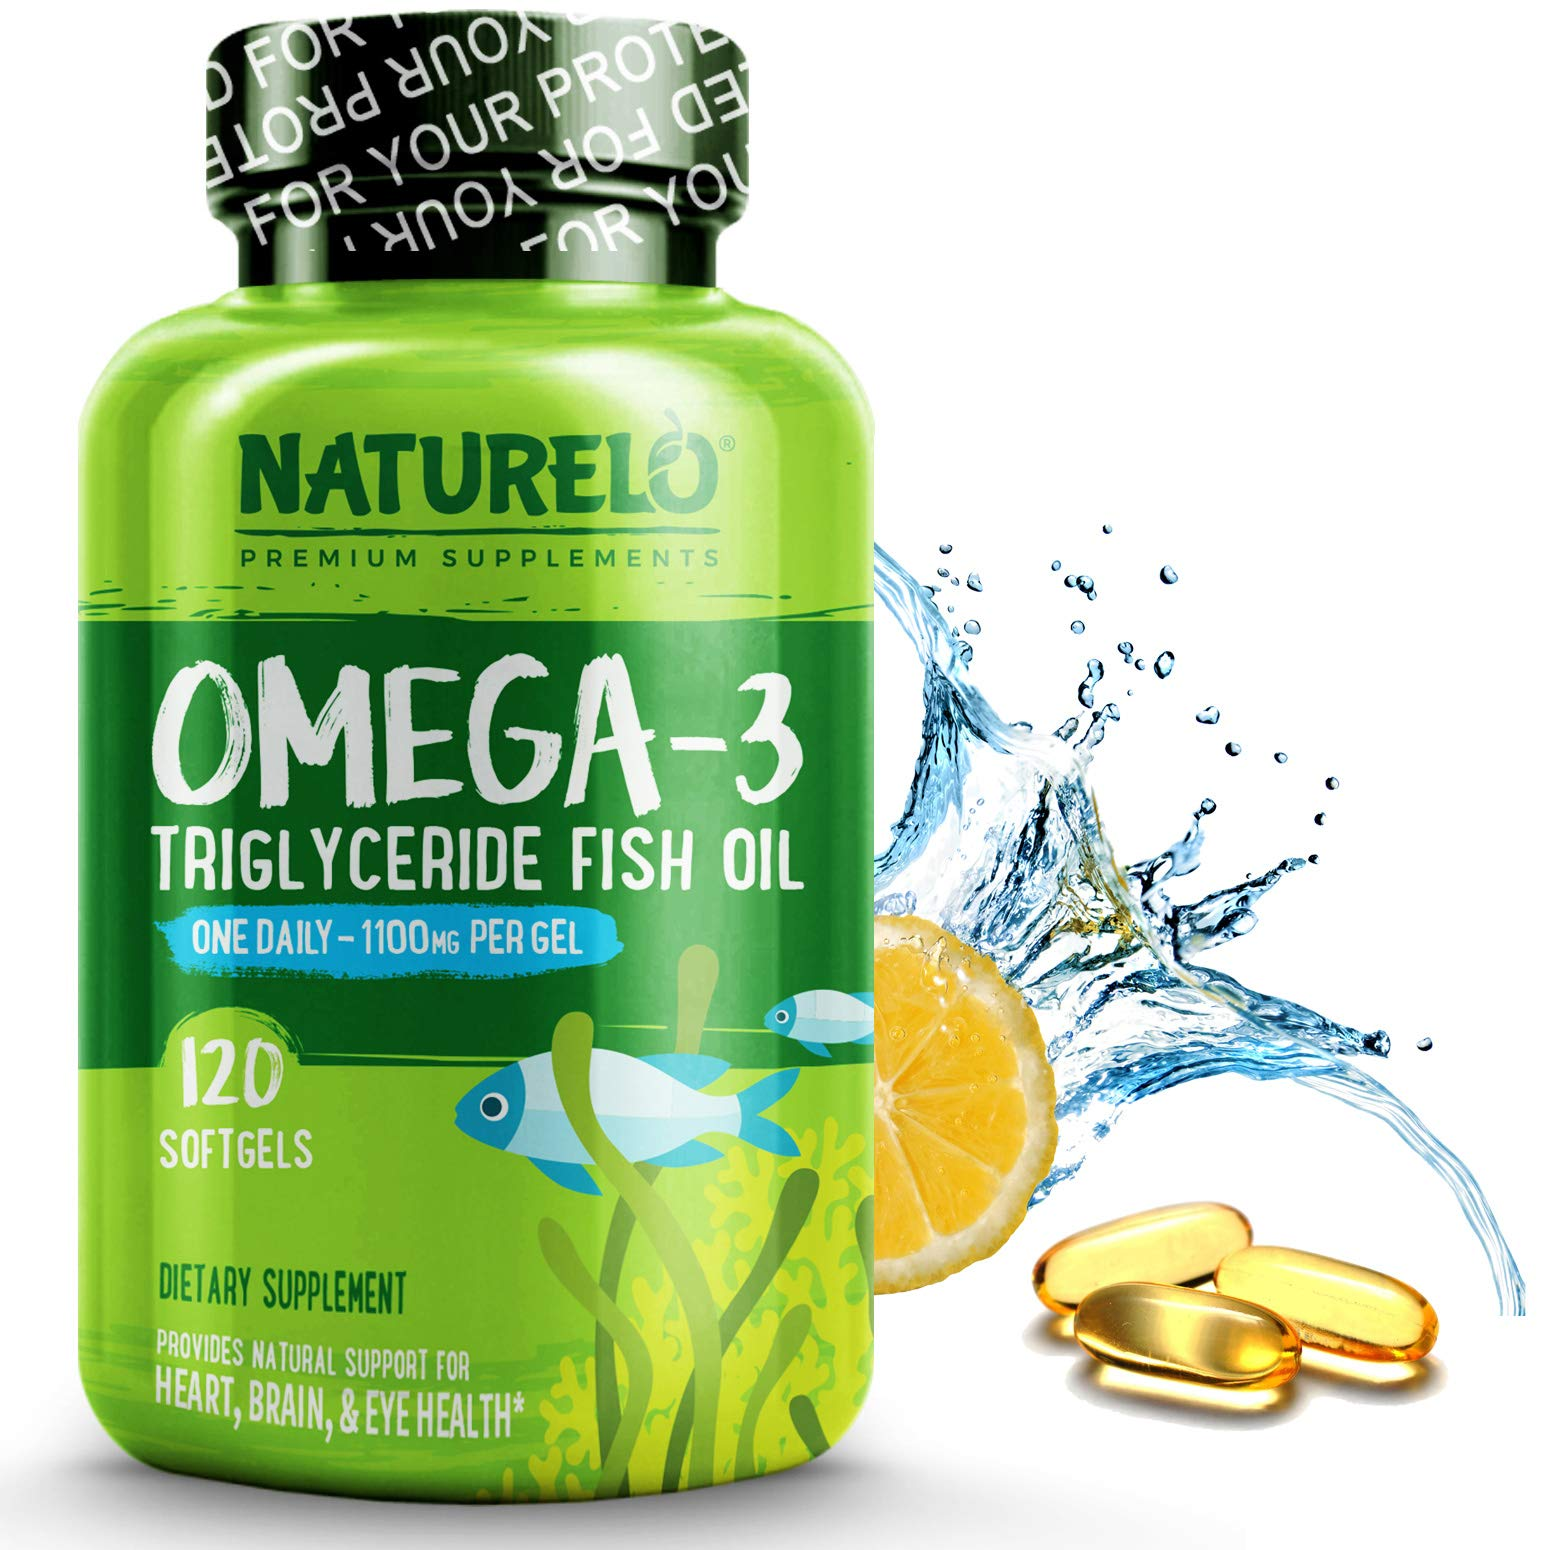 NATURELO Omega-3 Fish Oil Supplement - EPA DHA - 1100 mg Triglyceride Omega-3 per Gel - One A Day - Best for Heart, Eye, Brain, Joint Health - No Burps - Lemon Flavor - 120 Softgels | 4 Month Supply by NATURELO